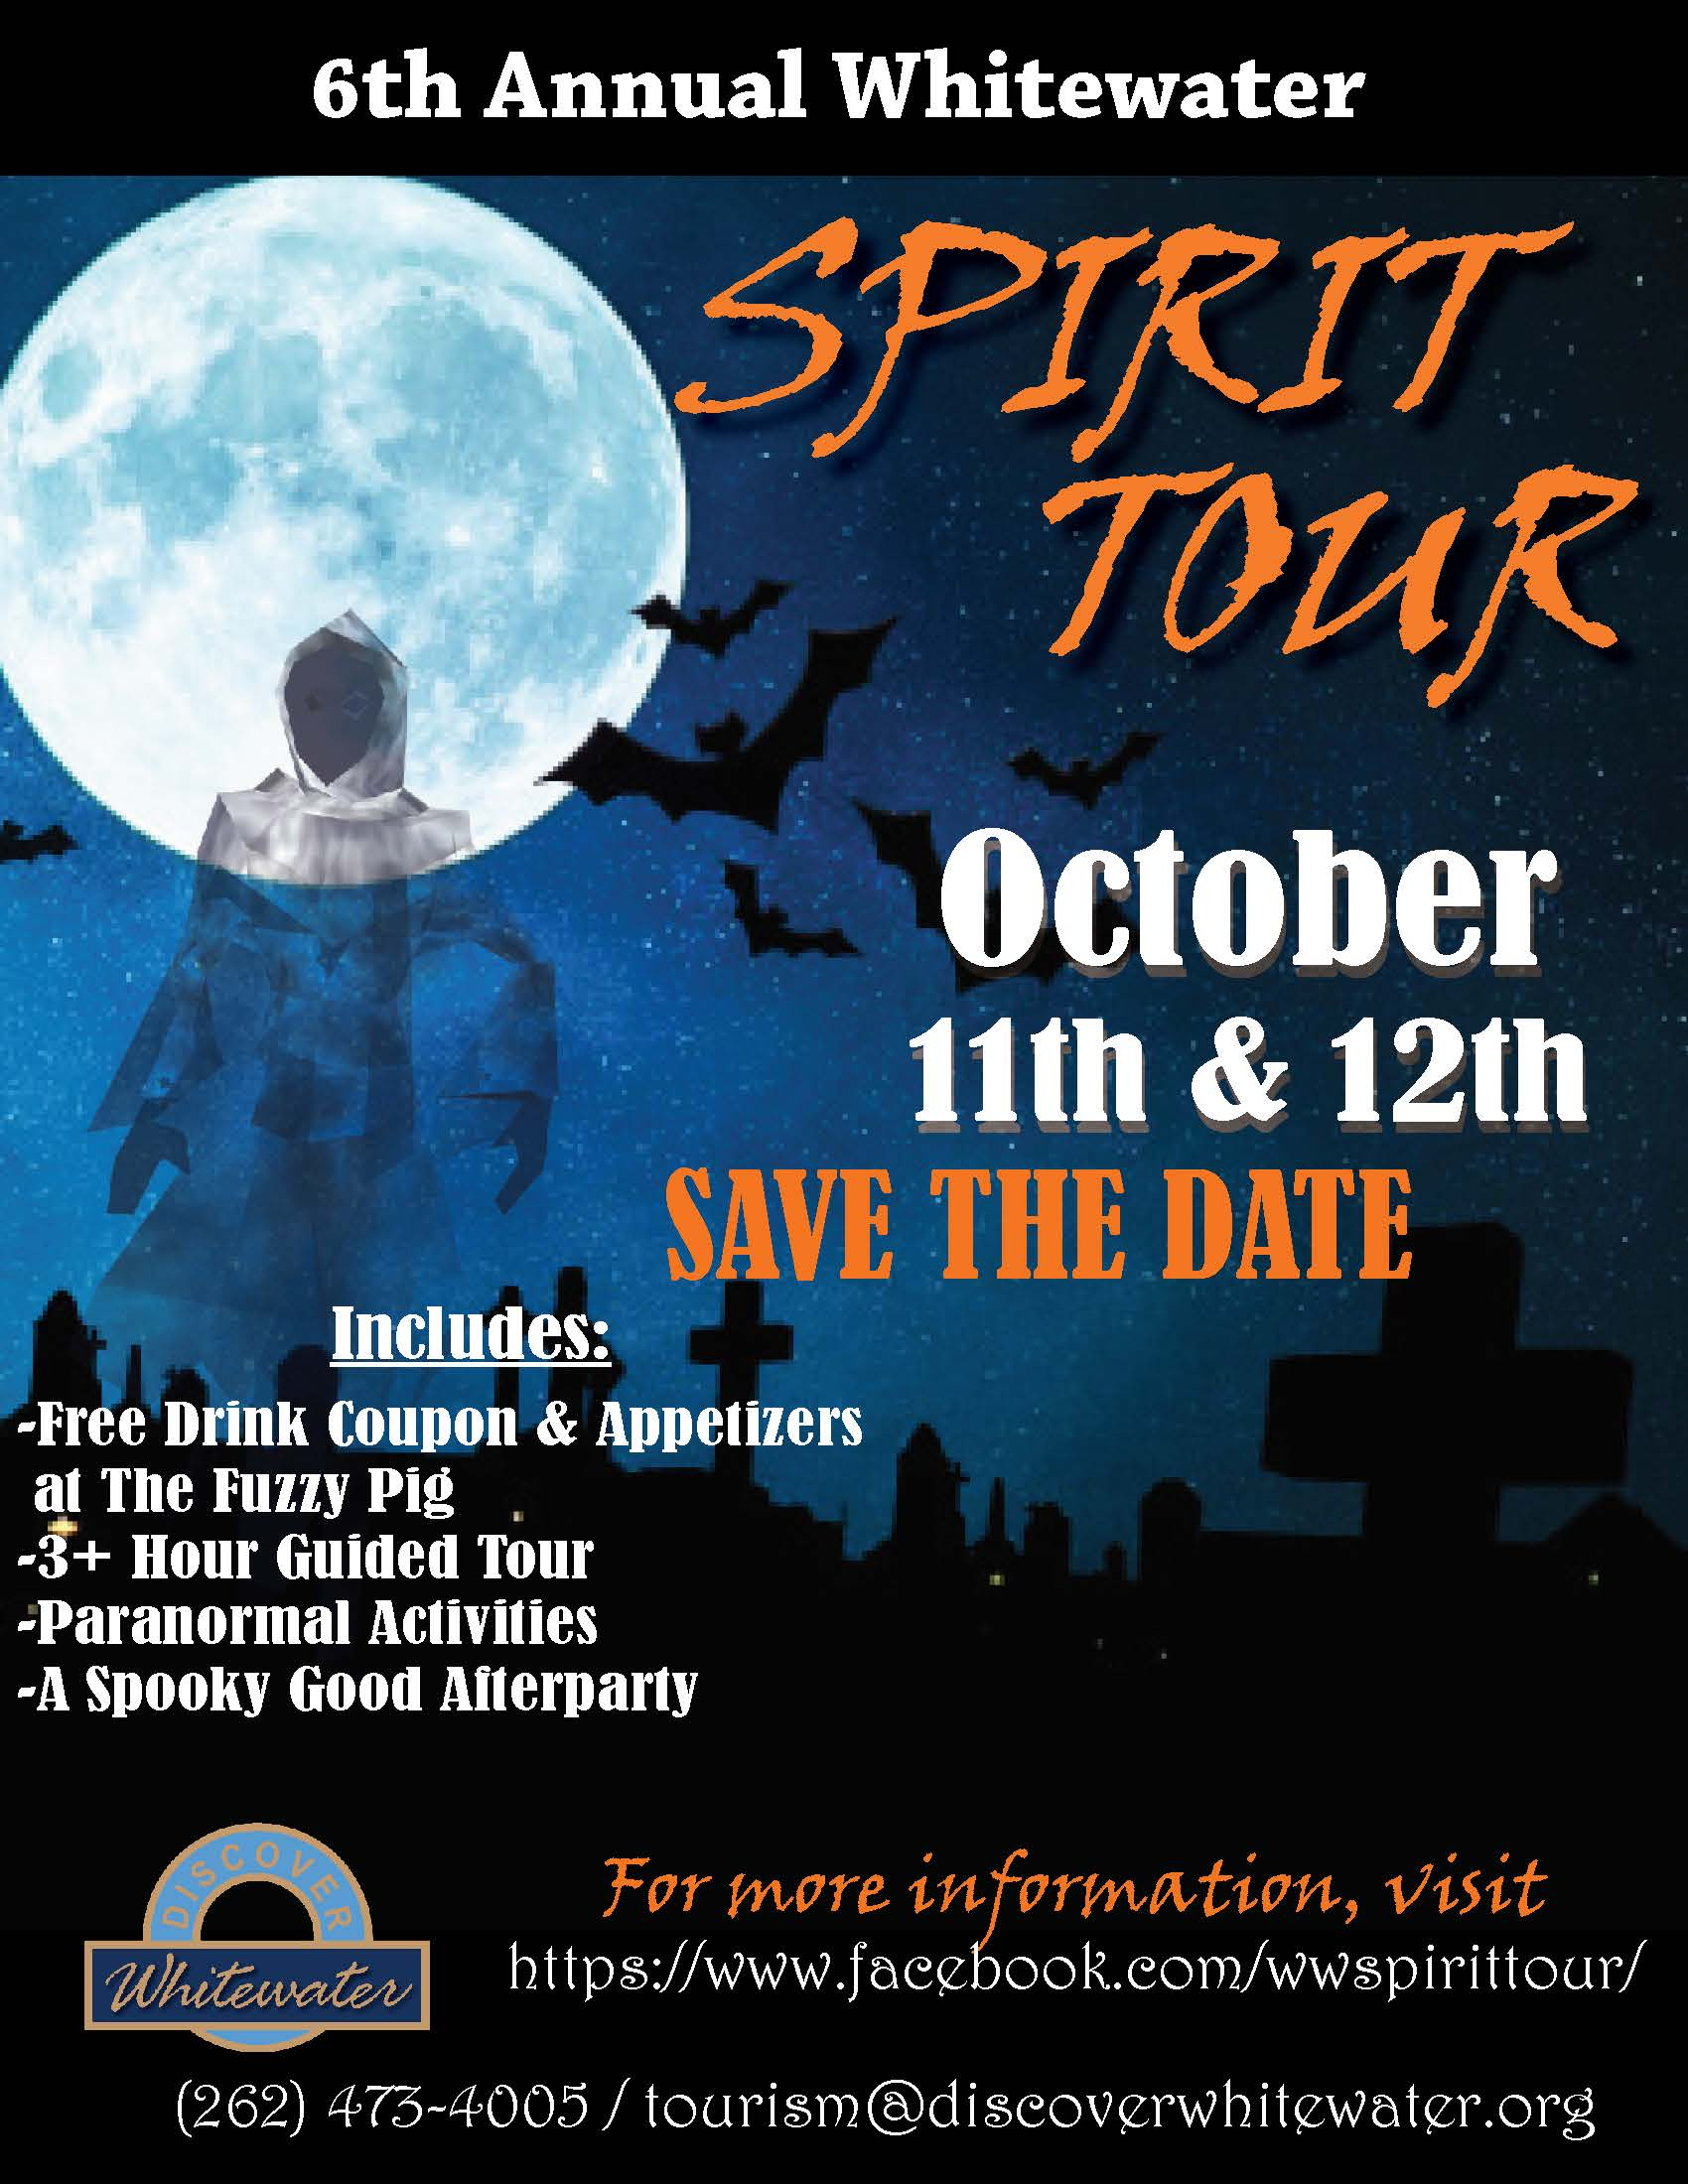 Spirit-Tour-2019-Save-The-Date-(1).jpg